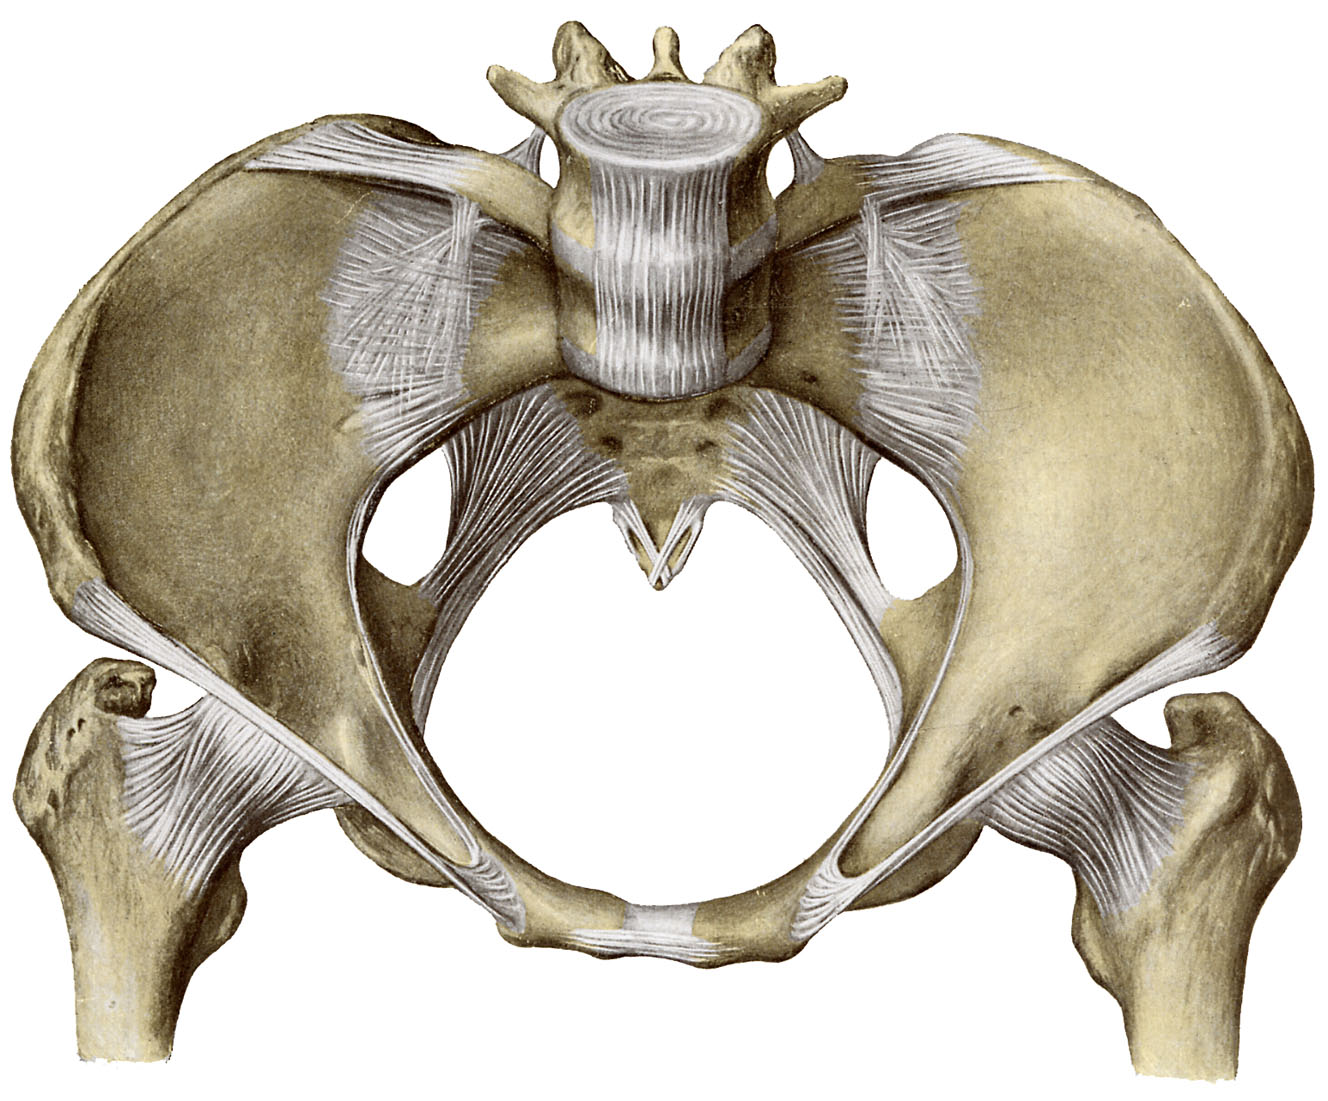 lacunar ligament - photo #30